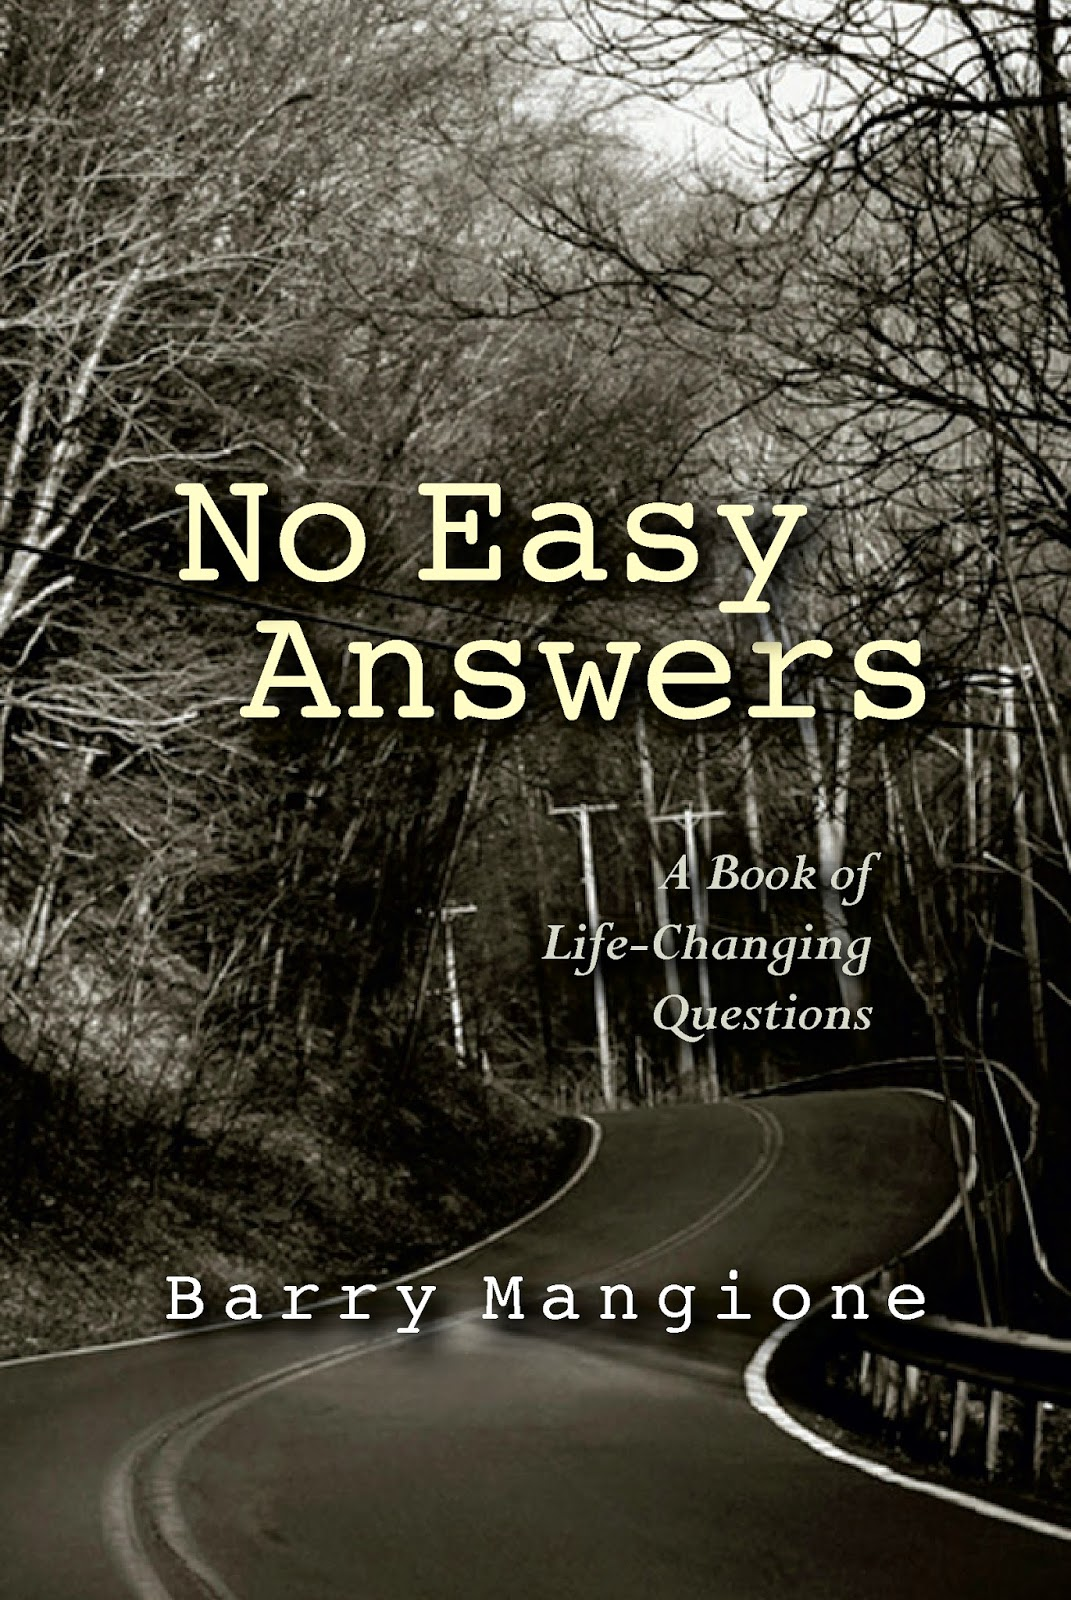 no easy answers, barry mangione, no easy answers barry, no easy answers book, no easy